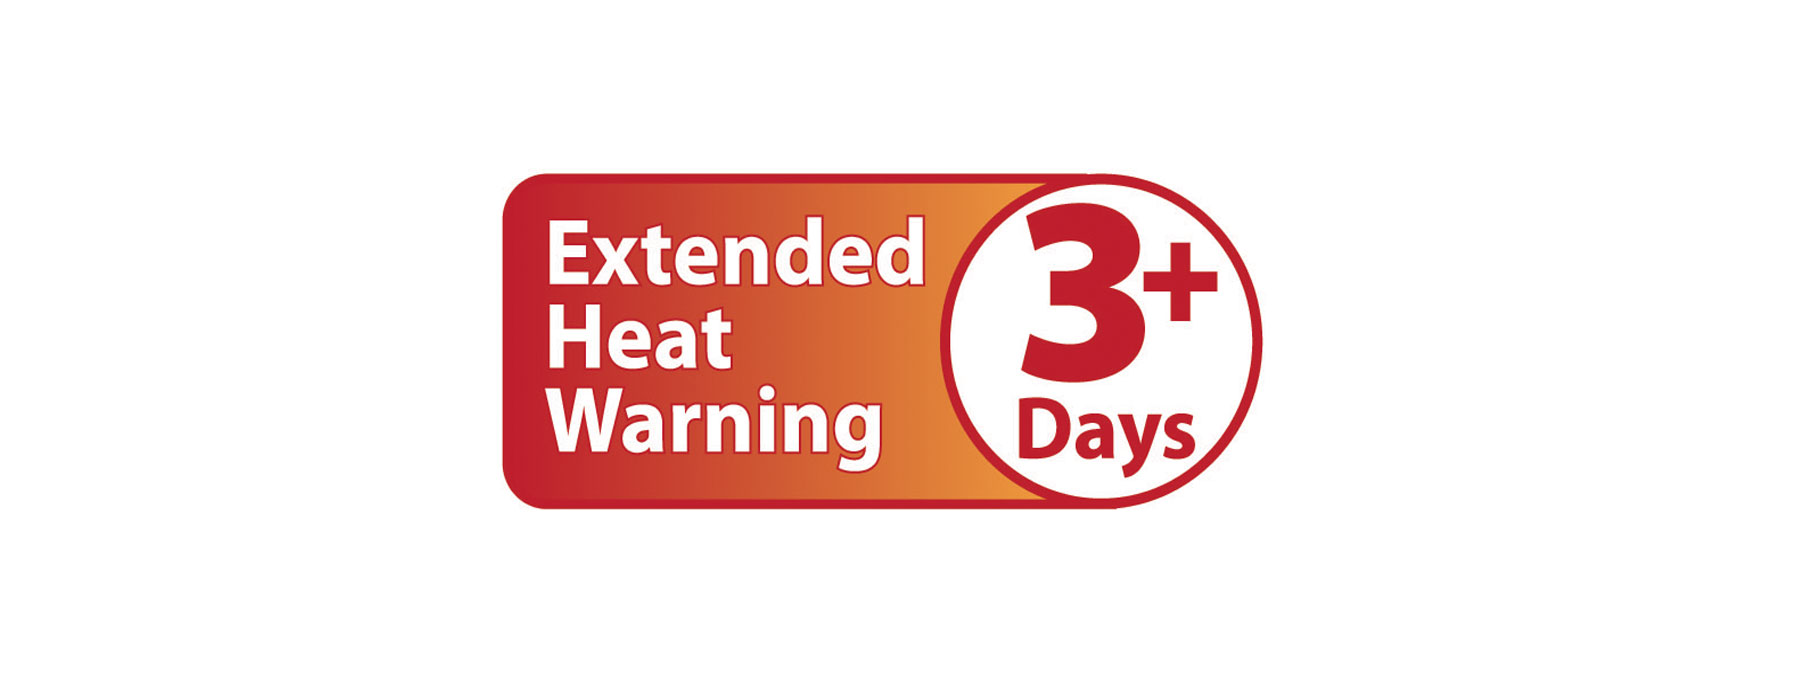 Extended Heat Warning 3 days Banner